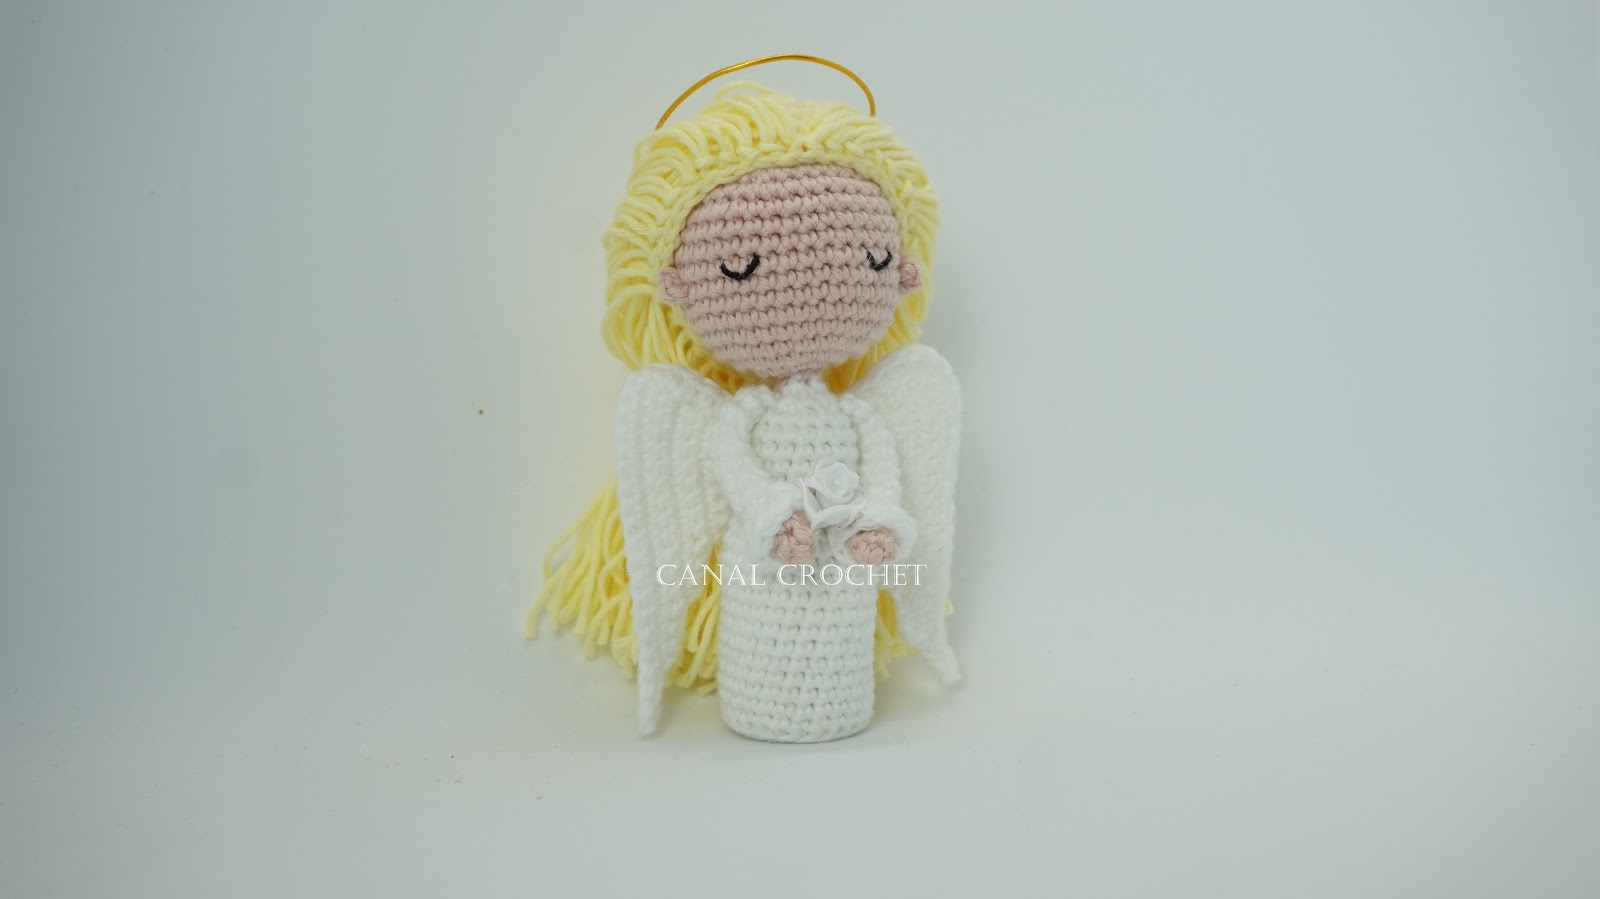 Crochet Amigurumi Doll Angel - Free Patterns #freecrochetpatterns ... | 899x1600